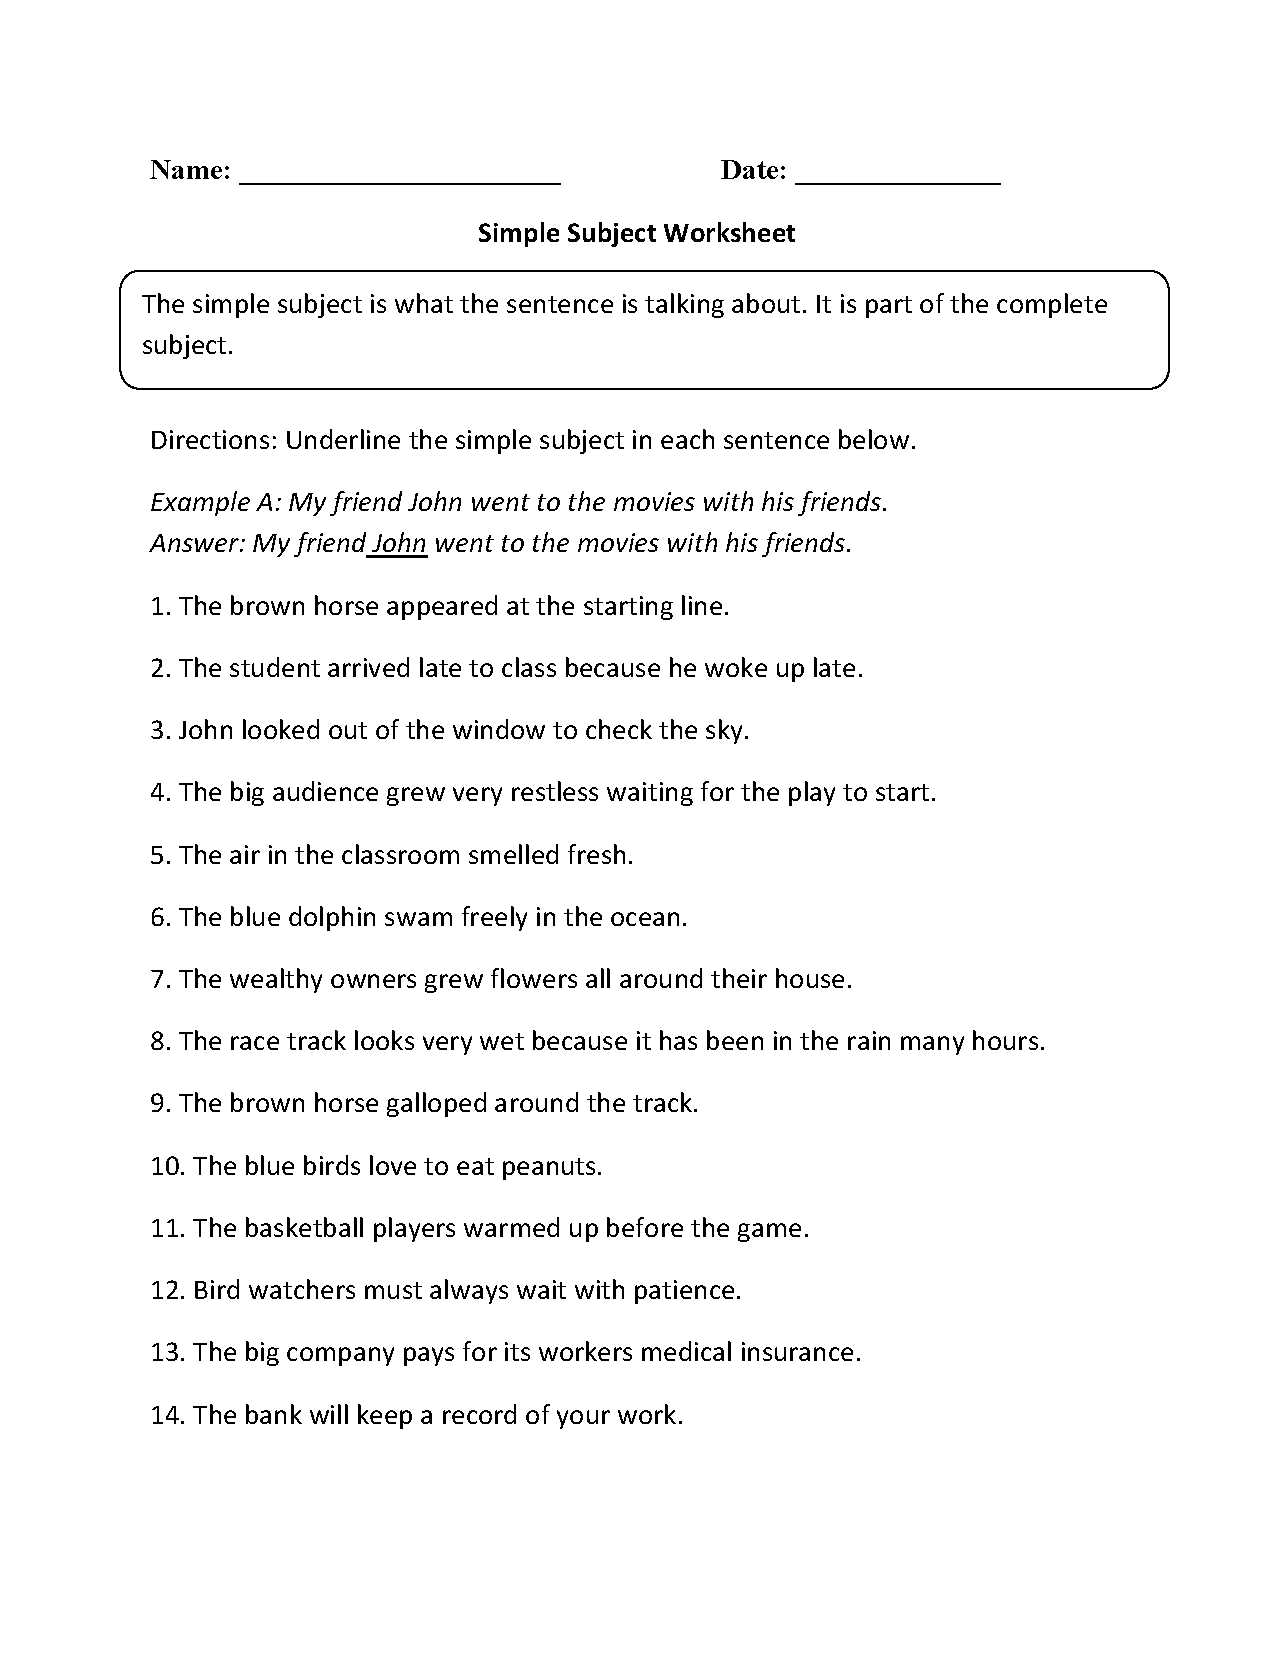 Poetry Worksheet 1 and Simple Subject Worksheet Englishlinx Board